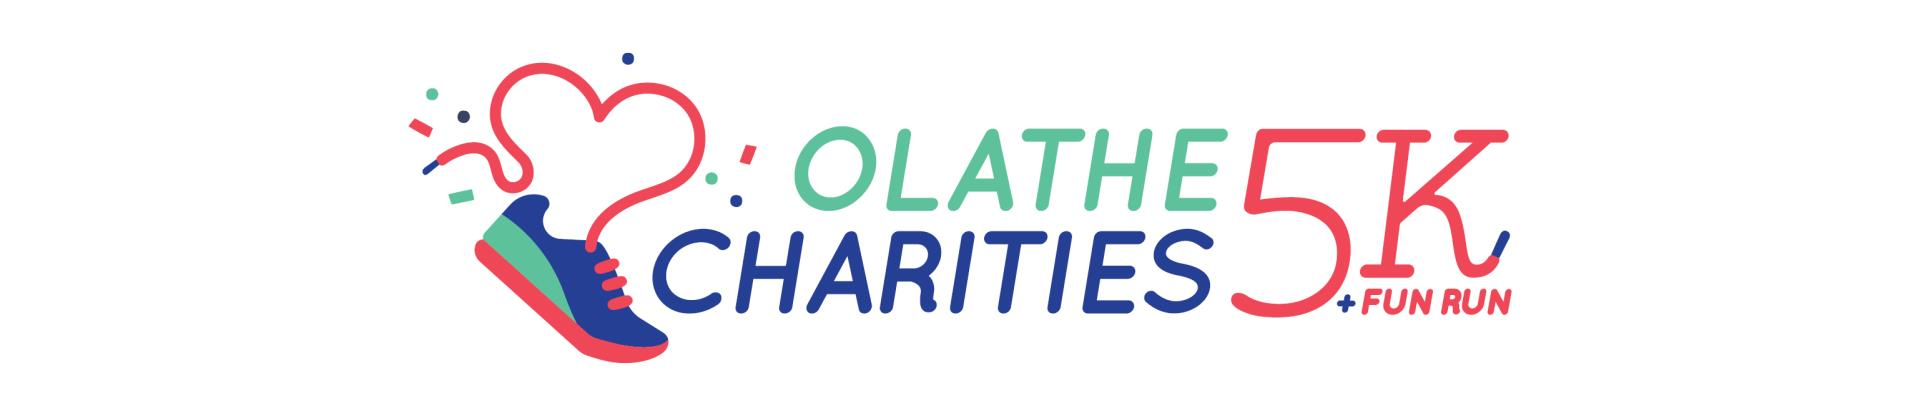 Olathe Charities 5K Header